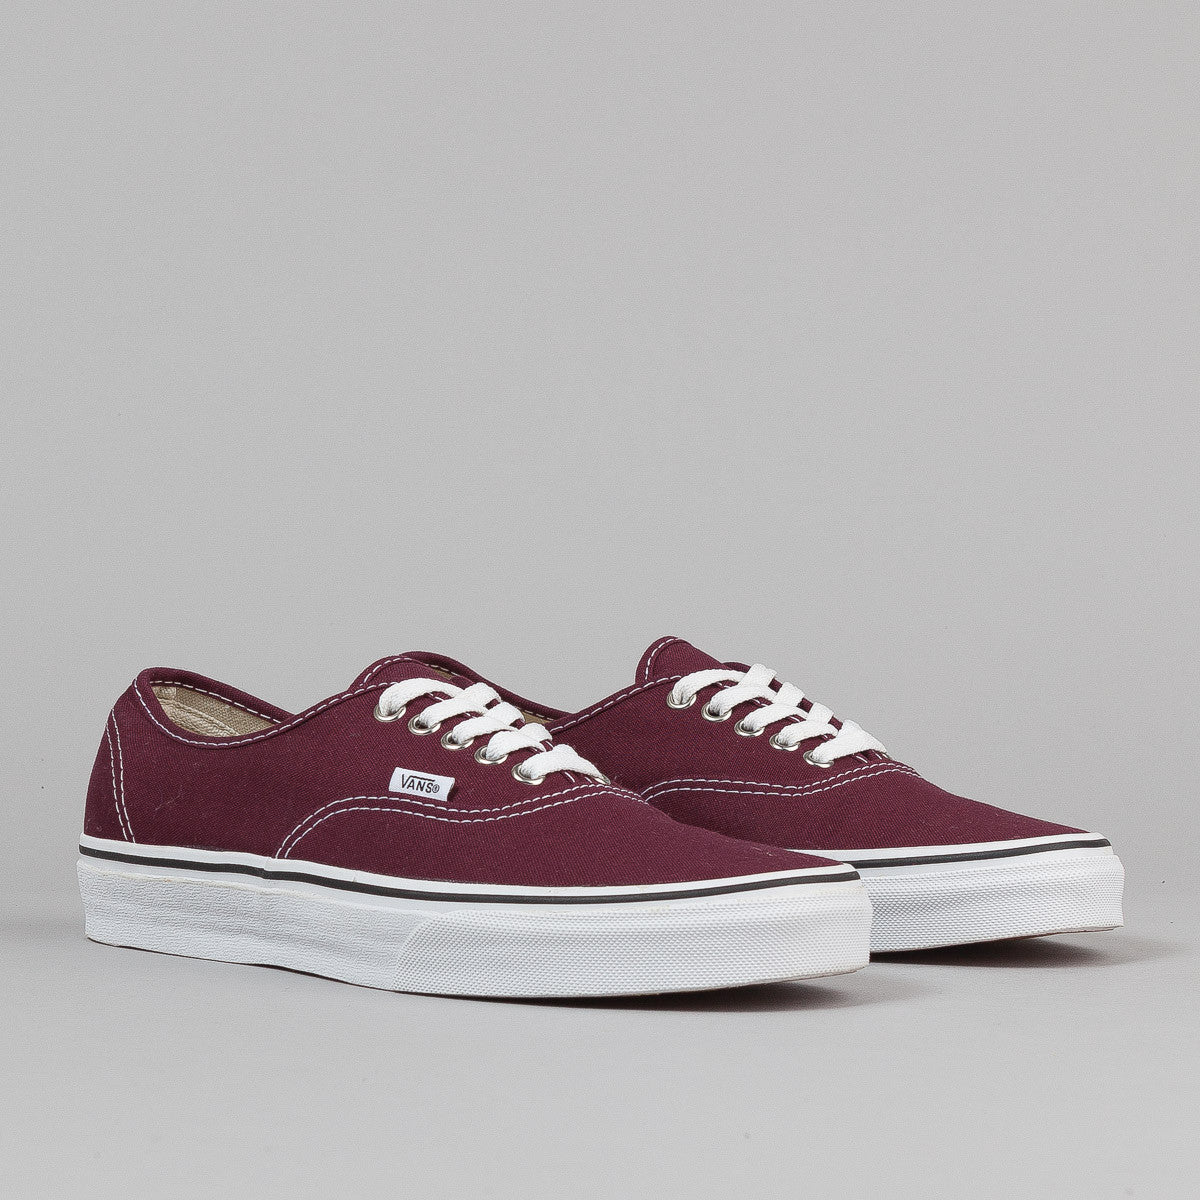 Vans Era Shoes - Port Royal / True White